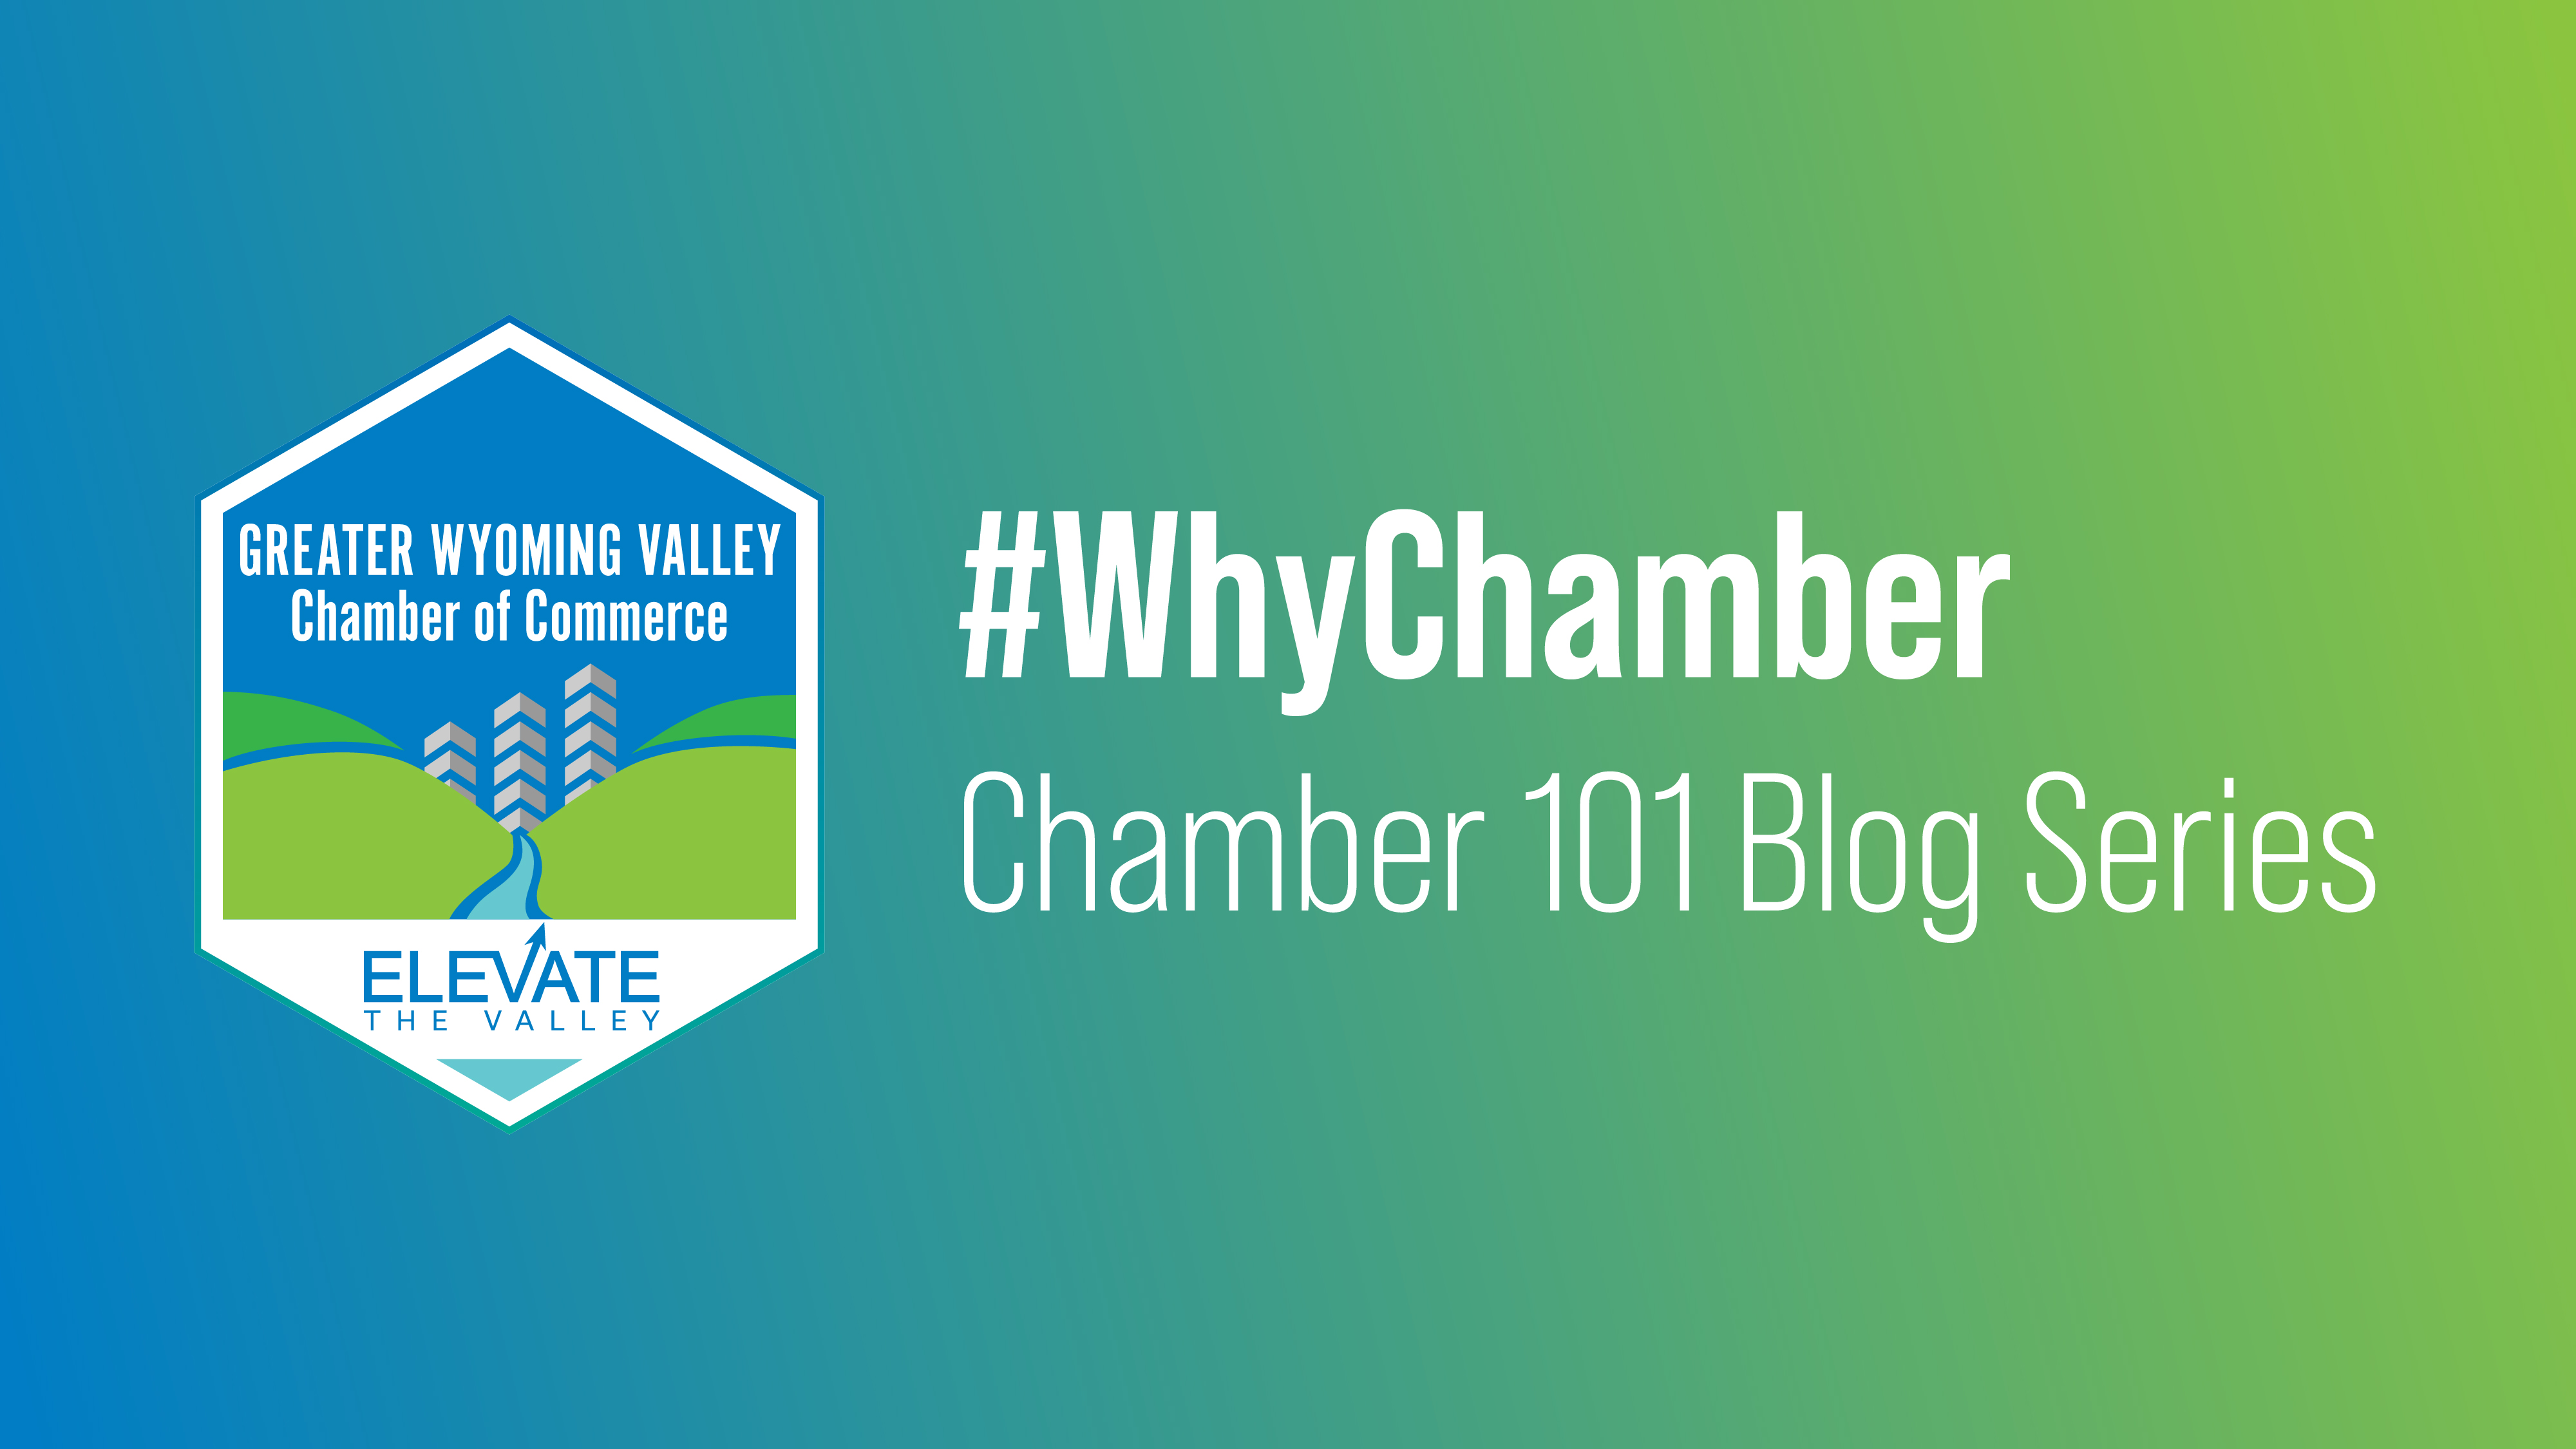 Image for #WhyChamber: Chamber 101